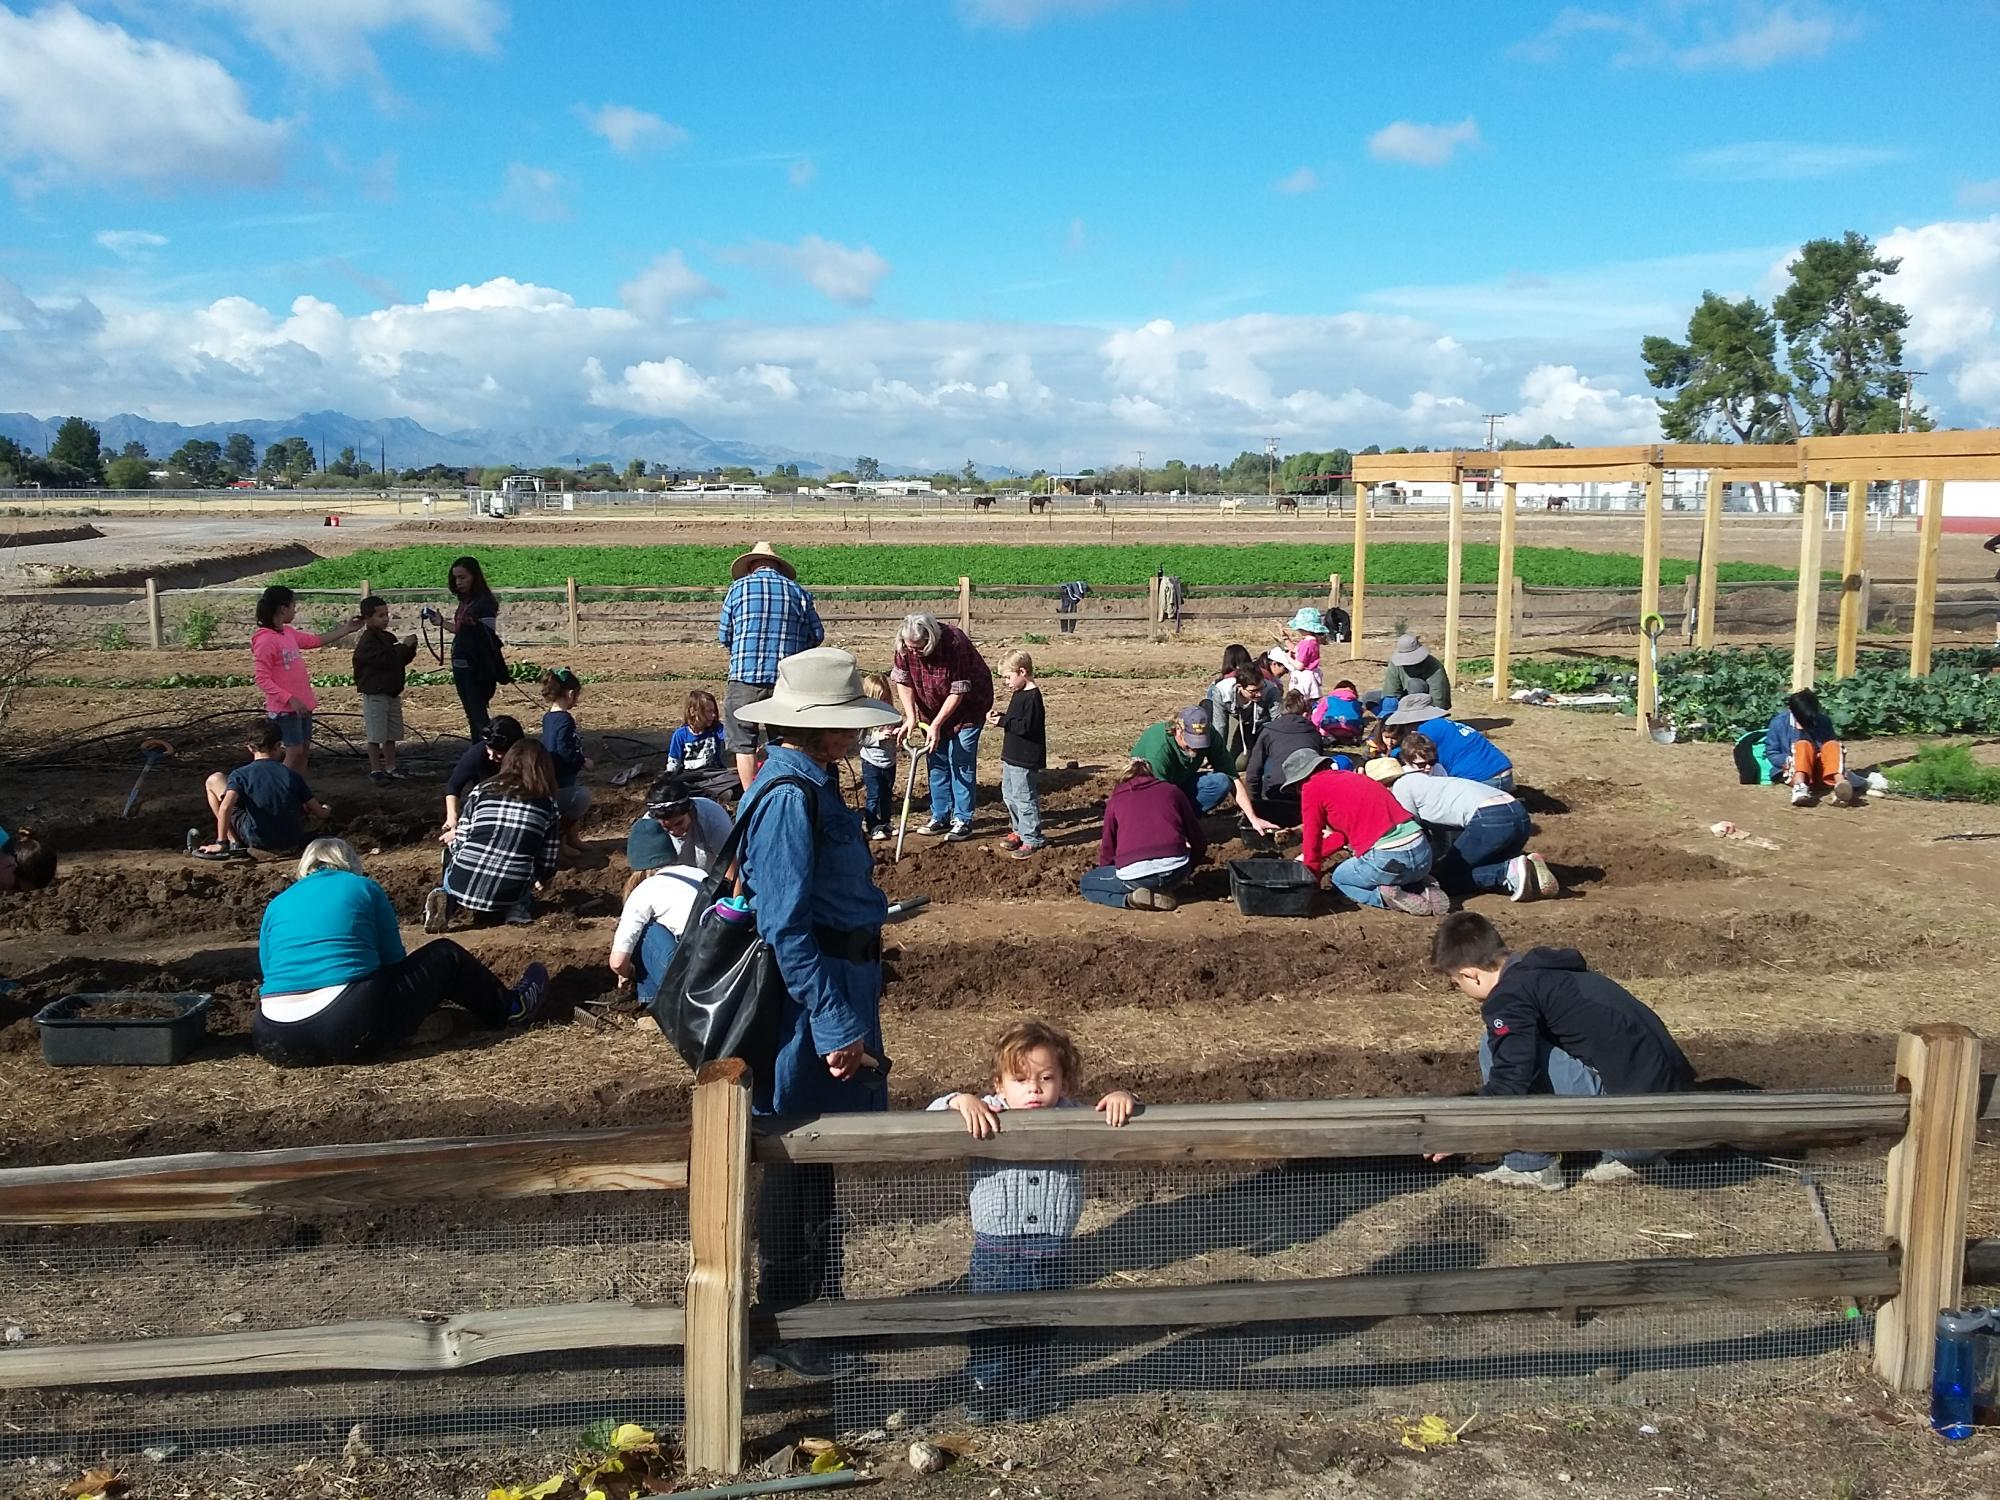 Tucson Village Farm offers year-round, hands-on programs for youth of all ages. The farm, at 4210 N. Campbell Ave., serves as a safe urban location for youth to be outdoors and engage in physical activity while contributing to and participating in local f